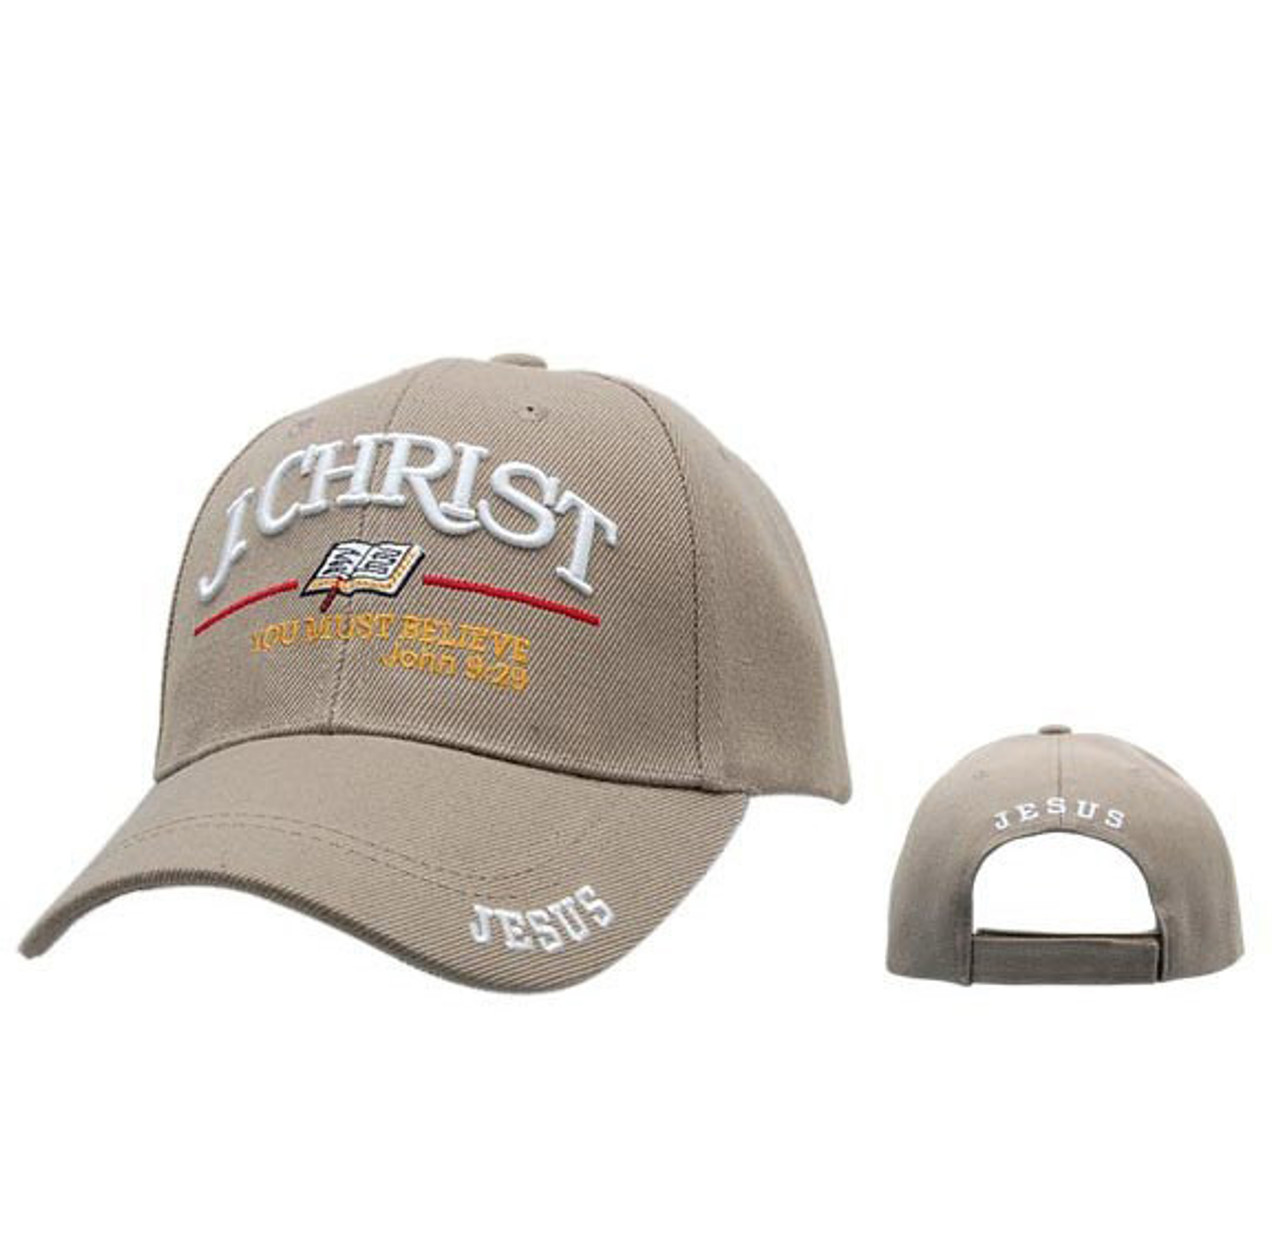 mens christian baseball caps cheap themed hat wholesale beige